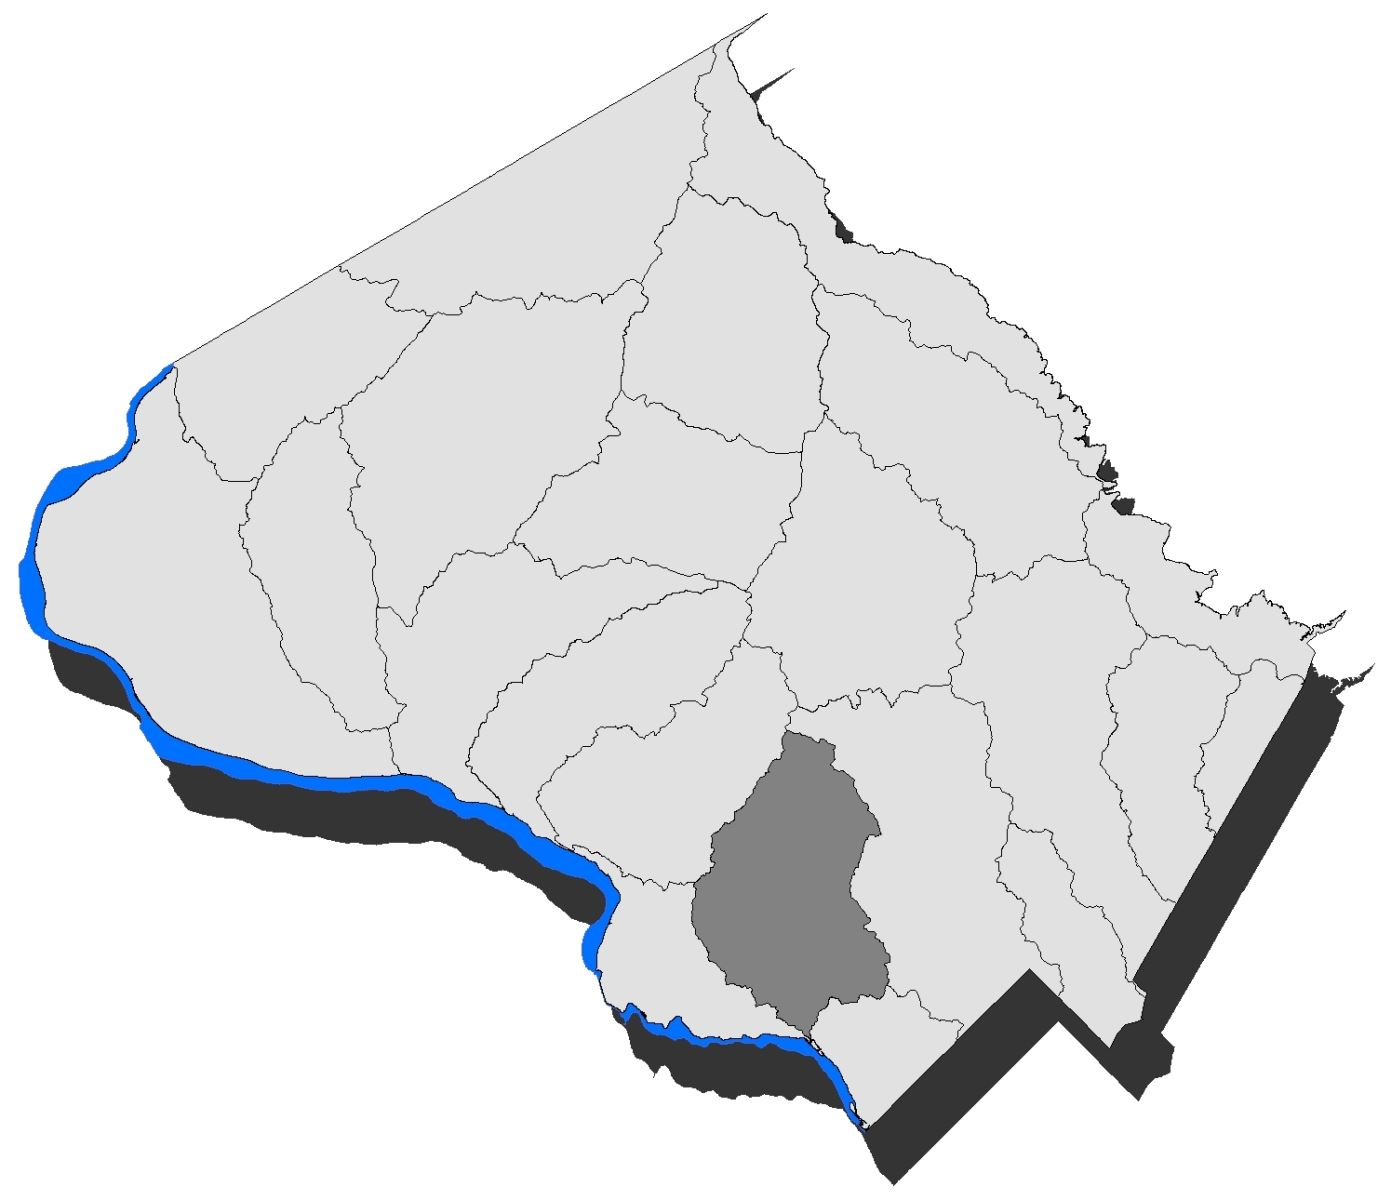 Map of the County with the Cabin John Creek Watershed highlighted